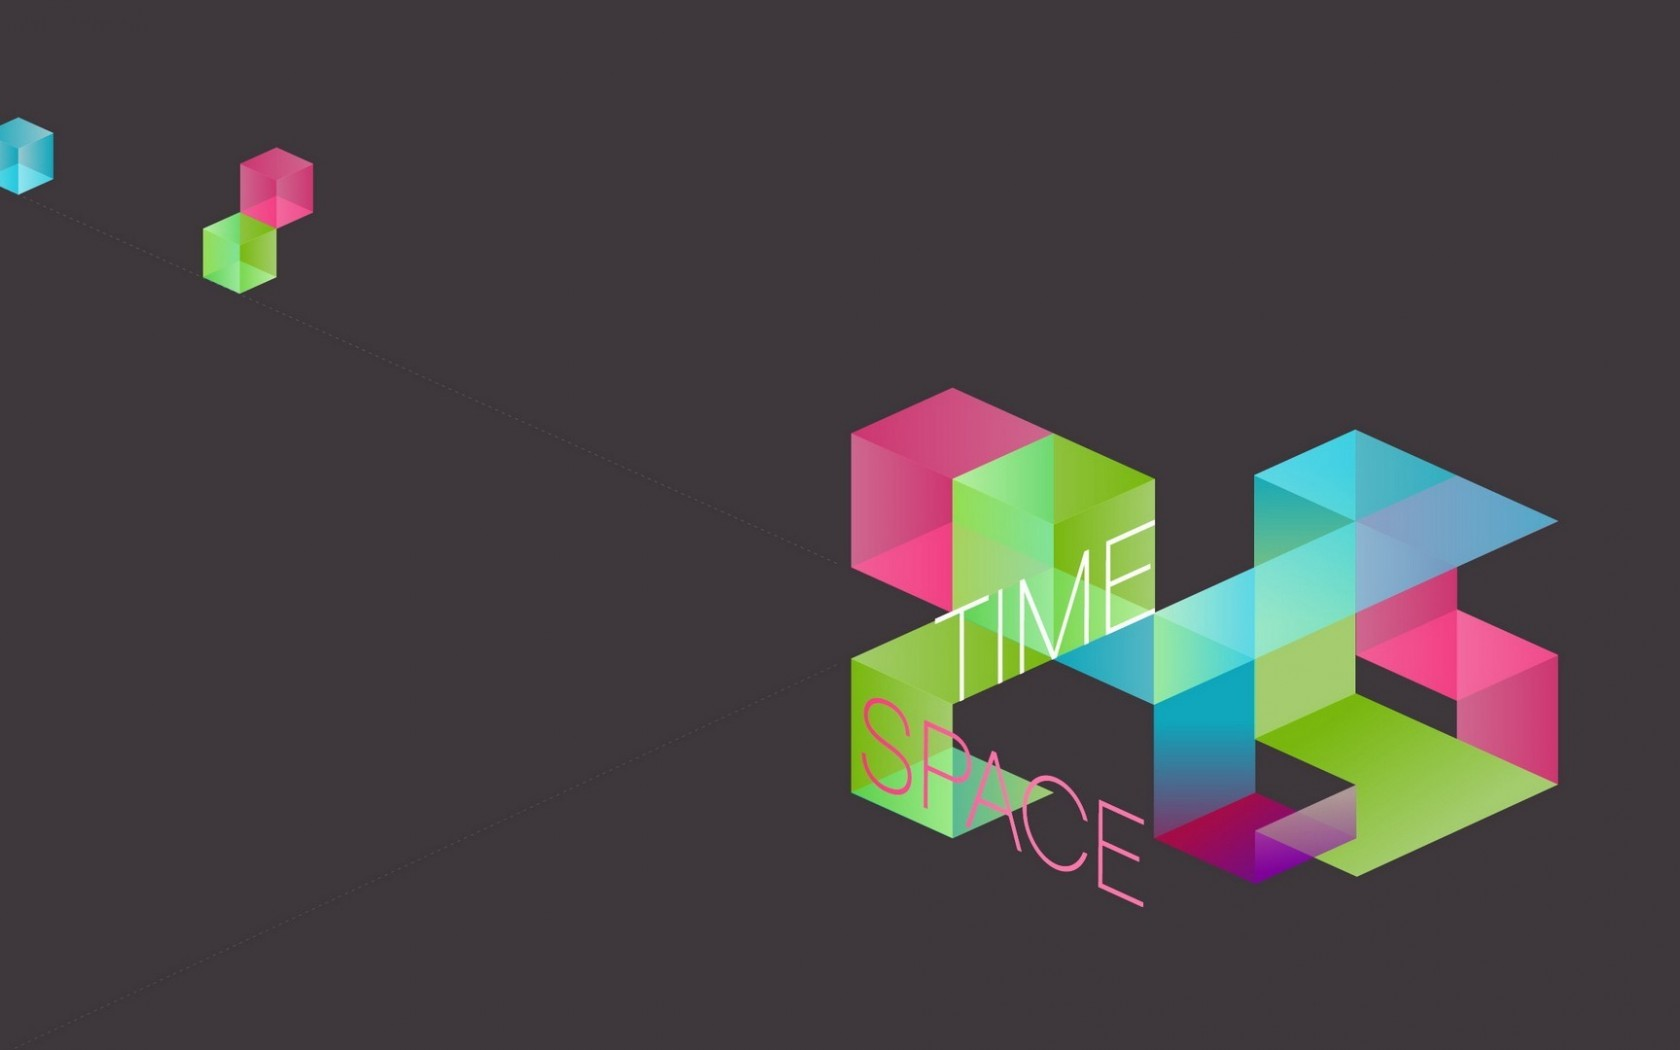 Time Space Polygon HD Wallpaper - Time Space Polygon HD Wallpaper